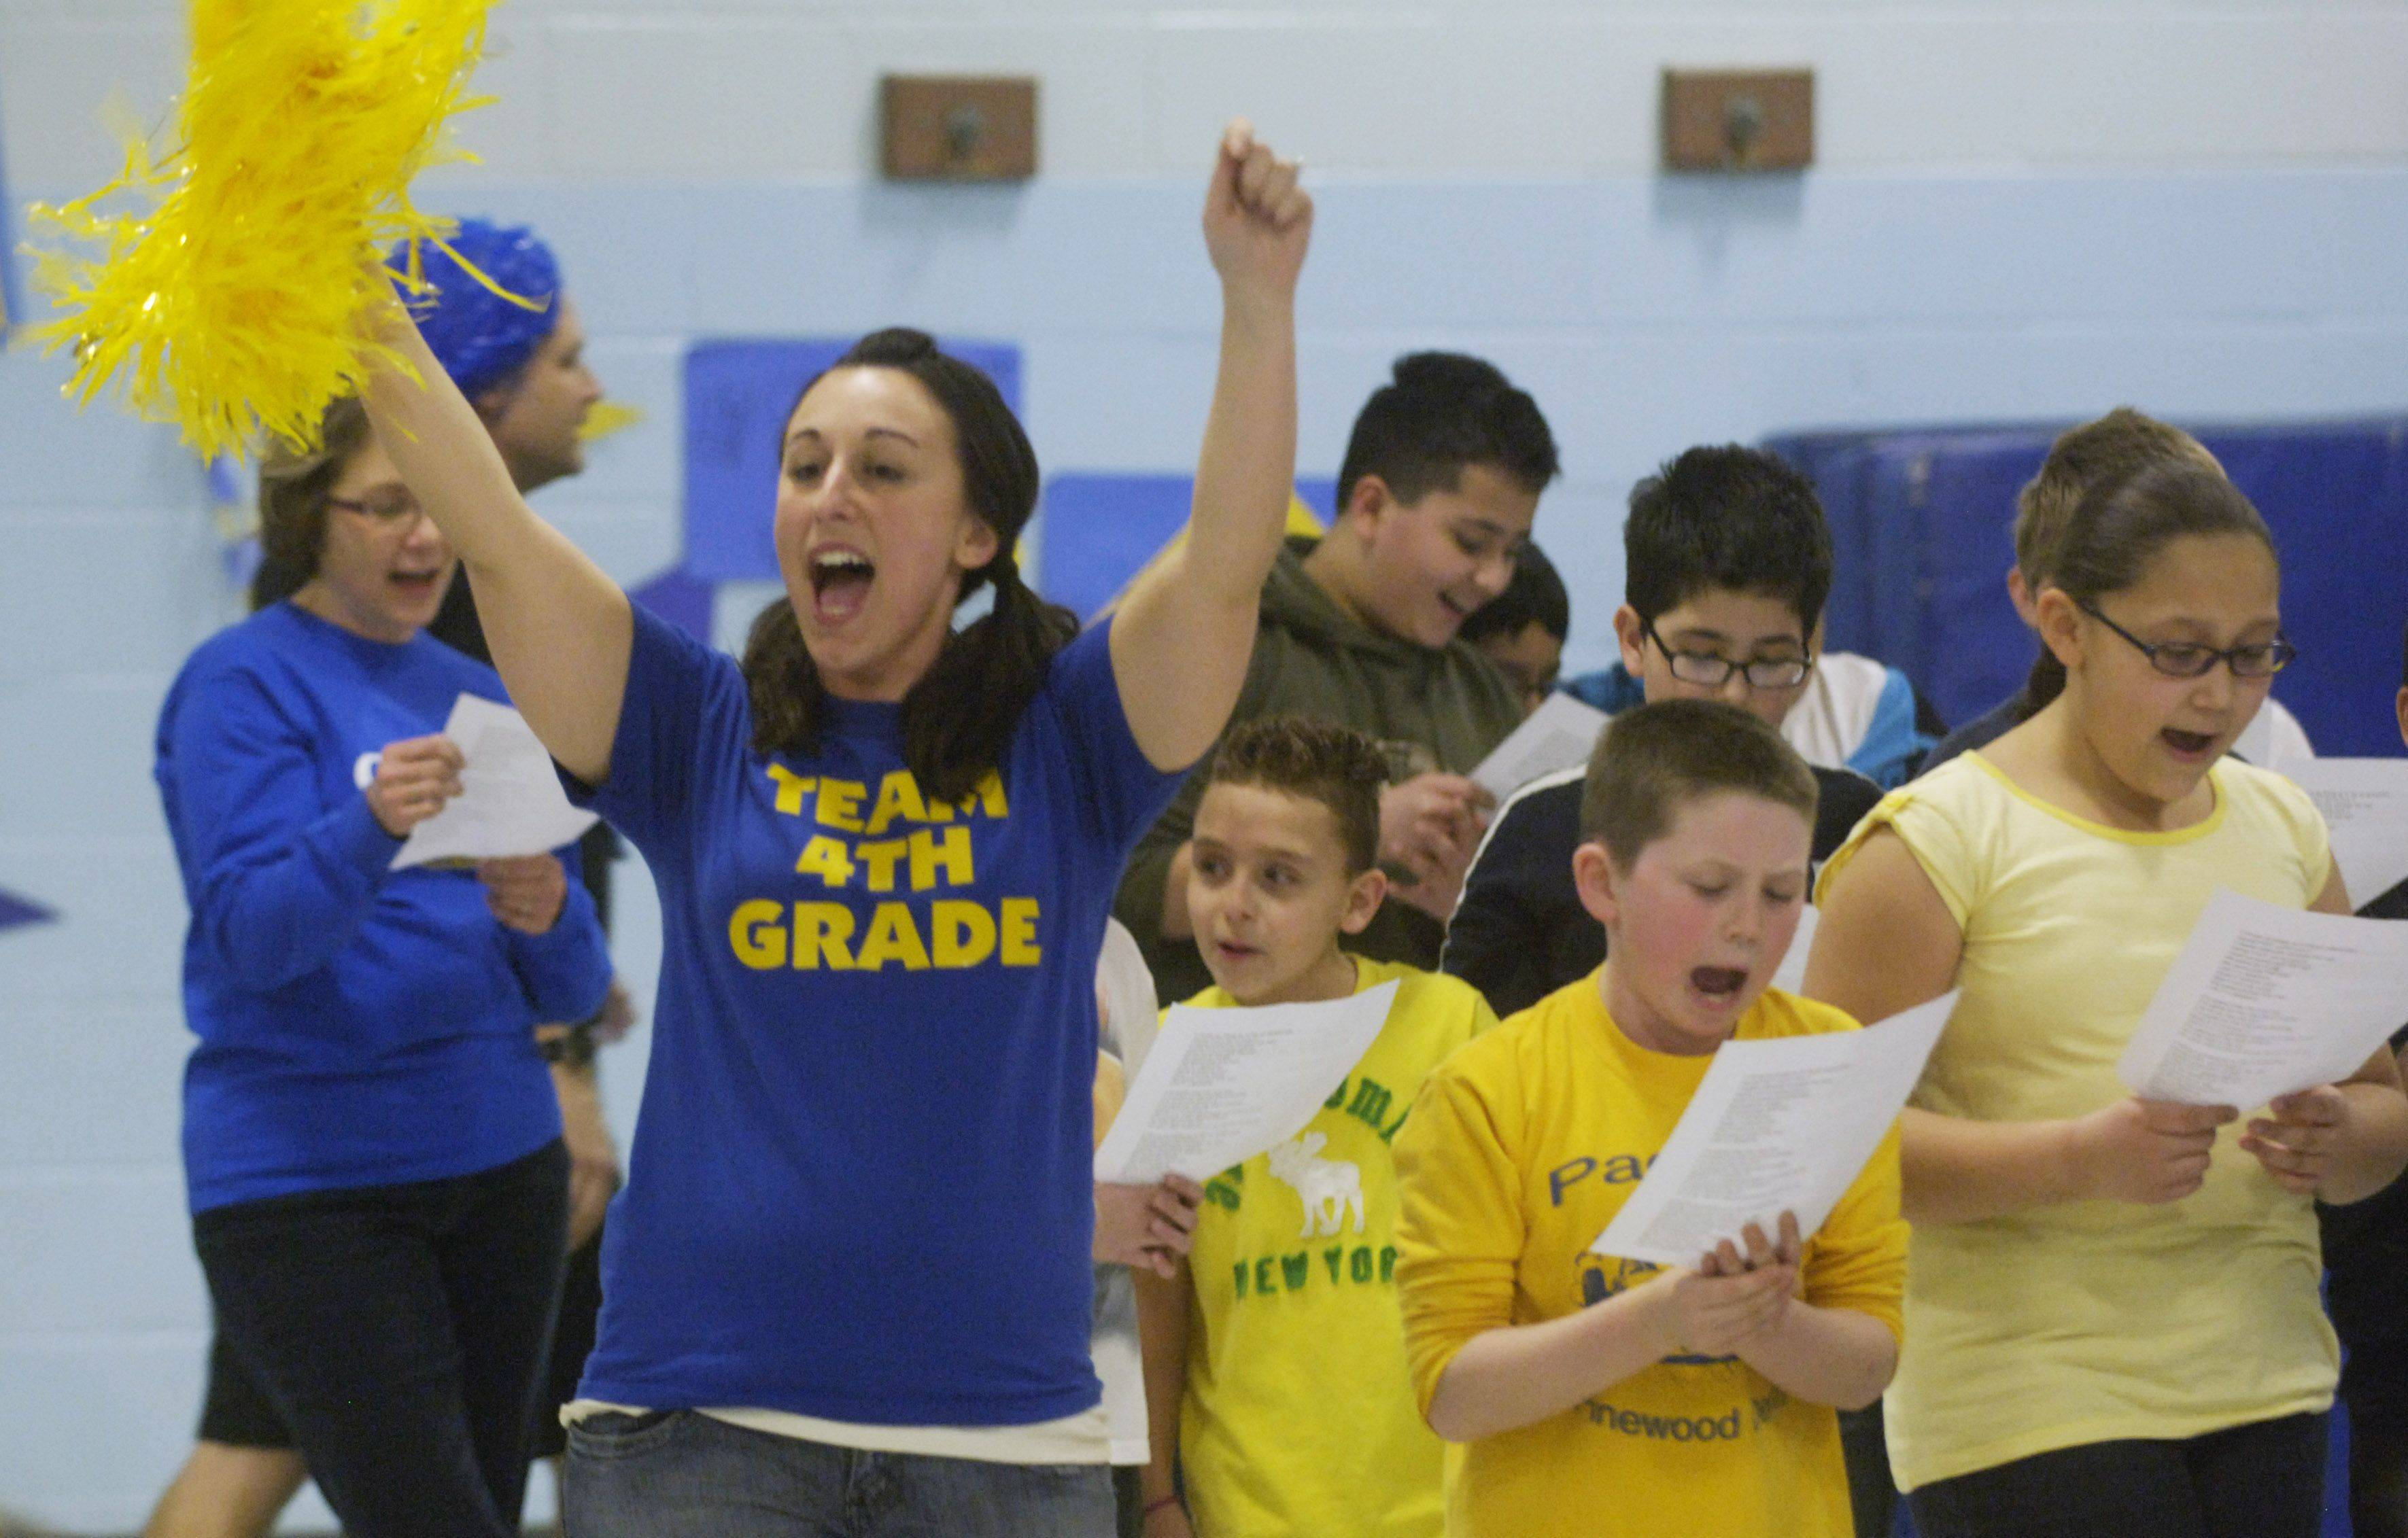 Fourth-grade teacher Stephanie Keadle cheers students on during a pep rally for next week's ISAT test at Orchard Place school in Des Plaines.